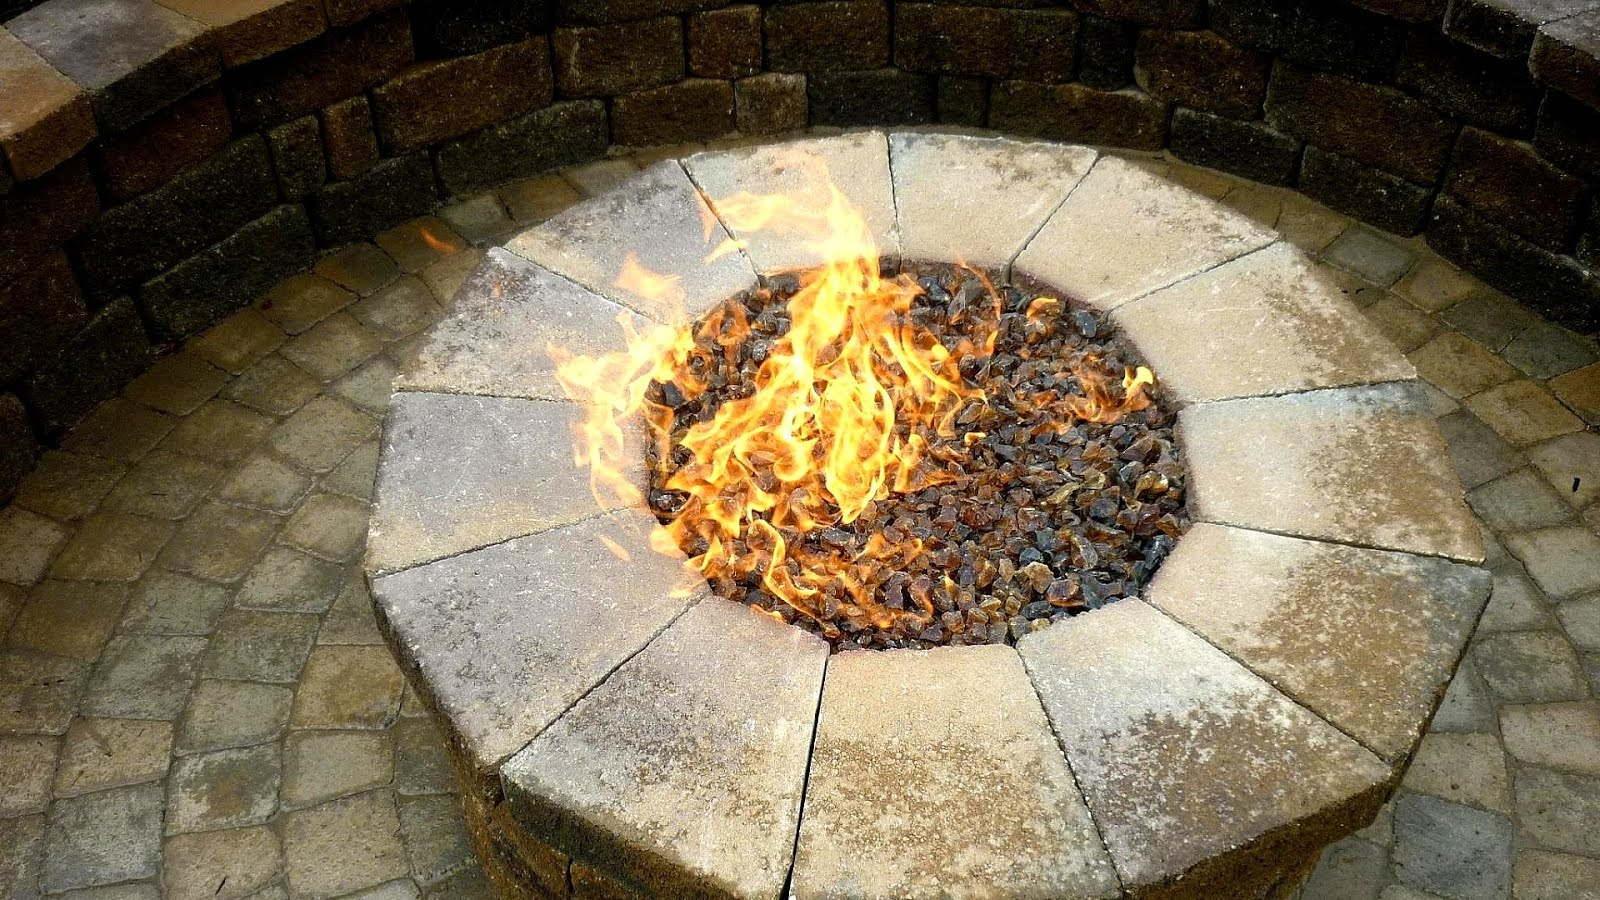 Fire Pit With Glass Crystals - Fire Choices